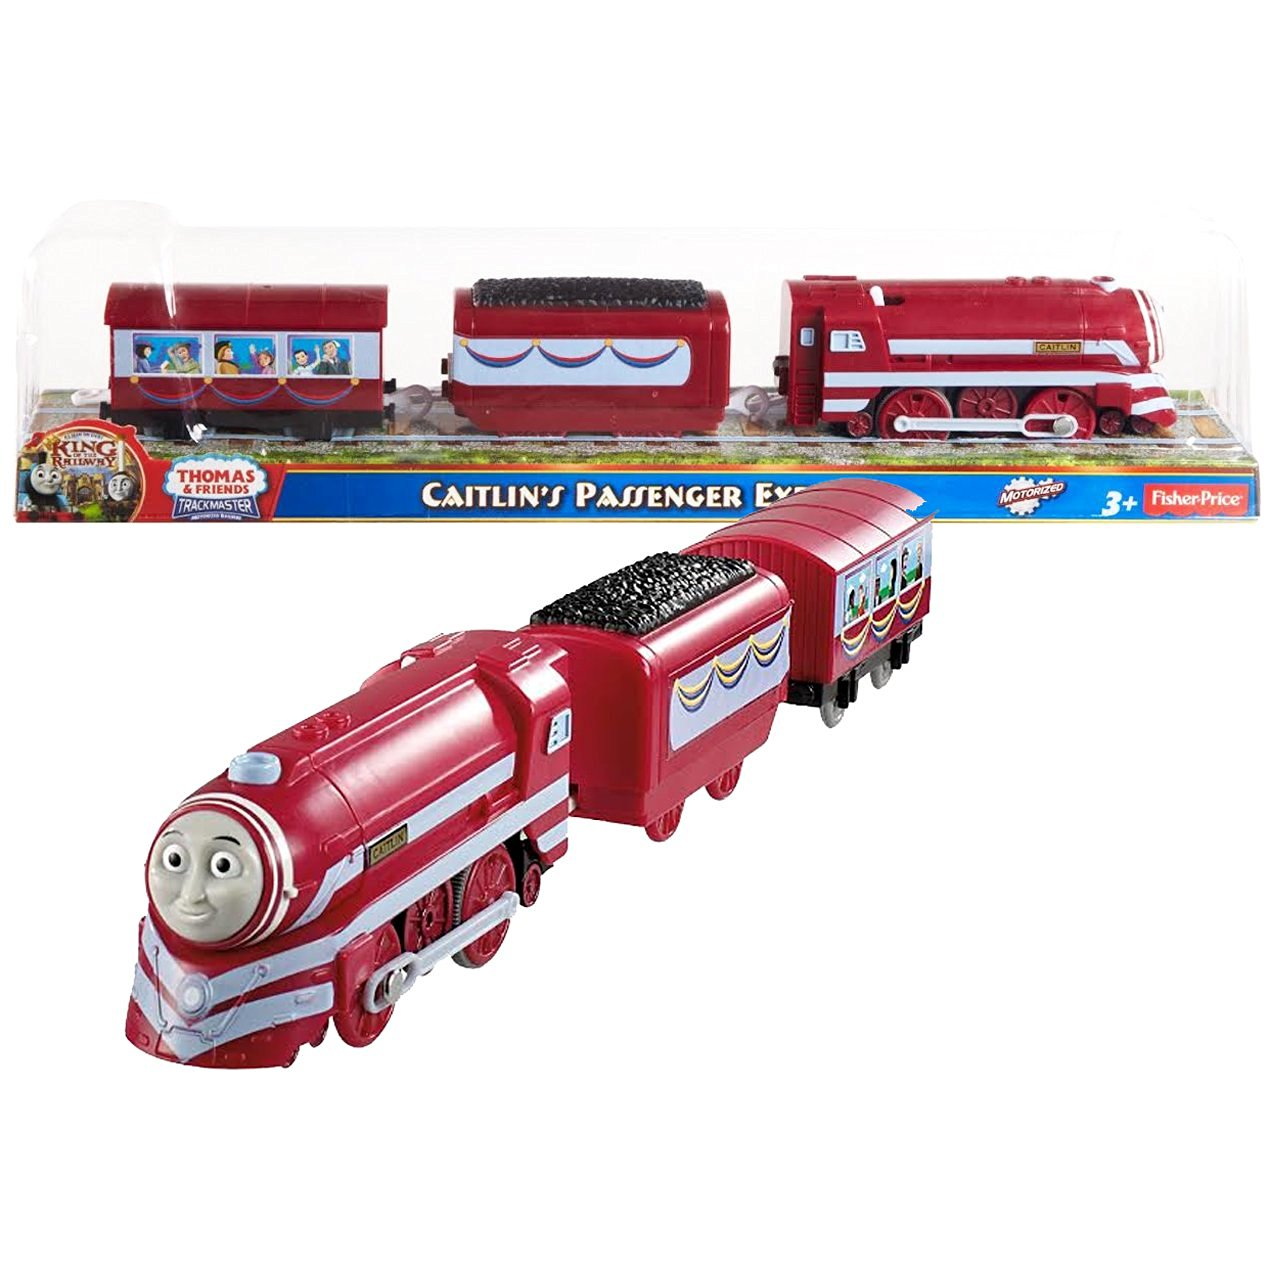 """Fisher Price Year 2013 Thomas and Friends As Seen On """"King of the Railway"""" DVD Series Trackmaster Motorized Railway Battery Powered Tank Engine 3 Pack Train Set - CAITLIN'S PASSENGER EXPRESS with 1 Coal Car and 1 Passenger Car"""